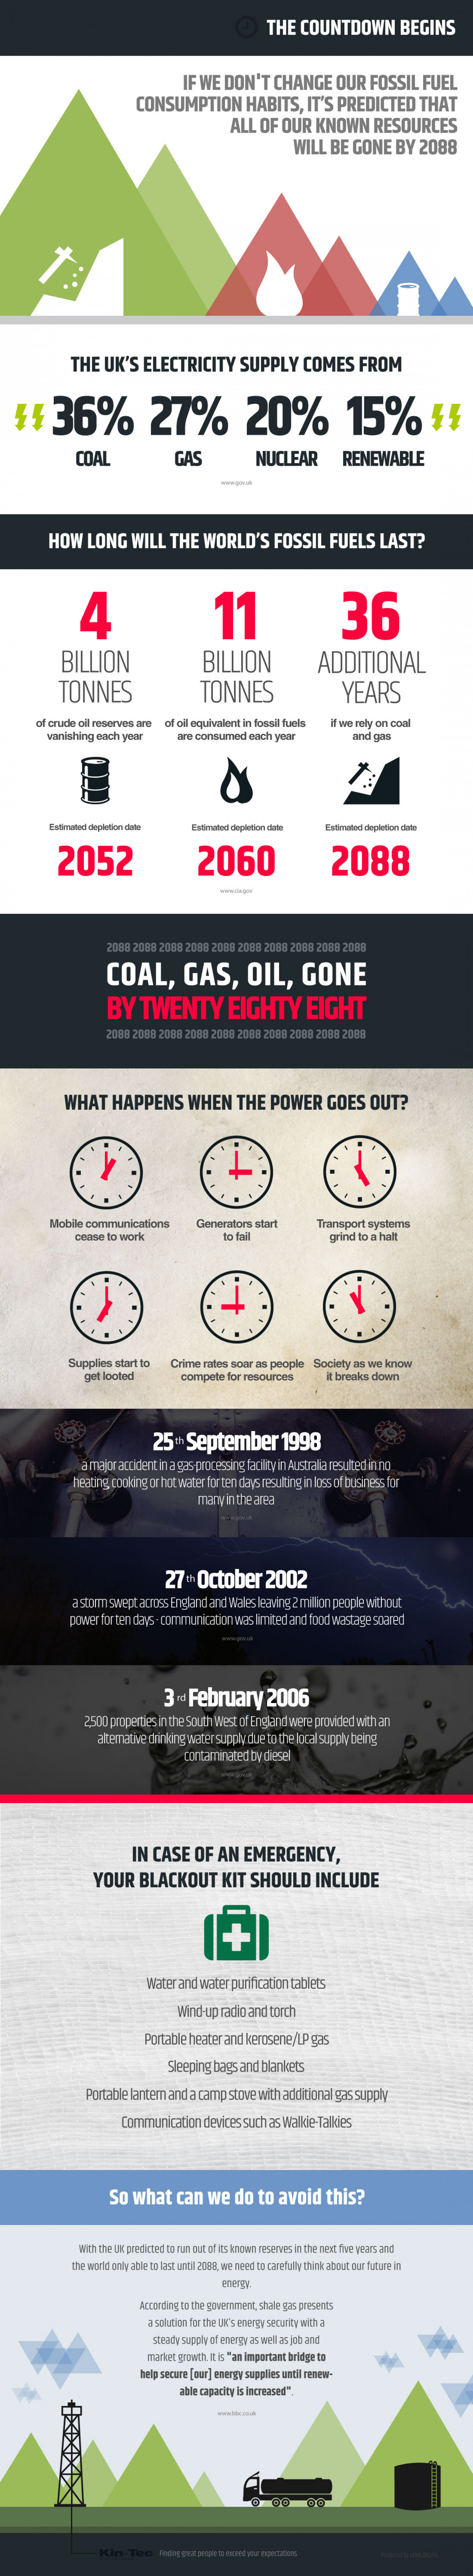 The Countdown Begins Infographic